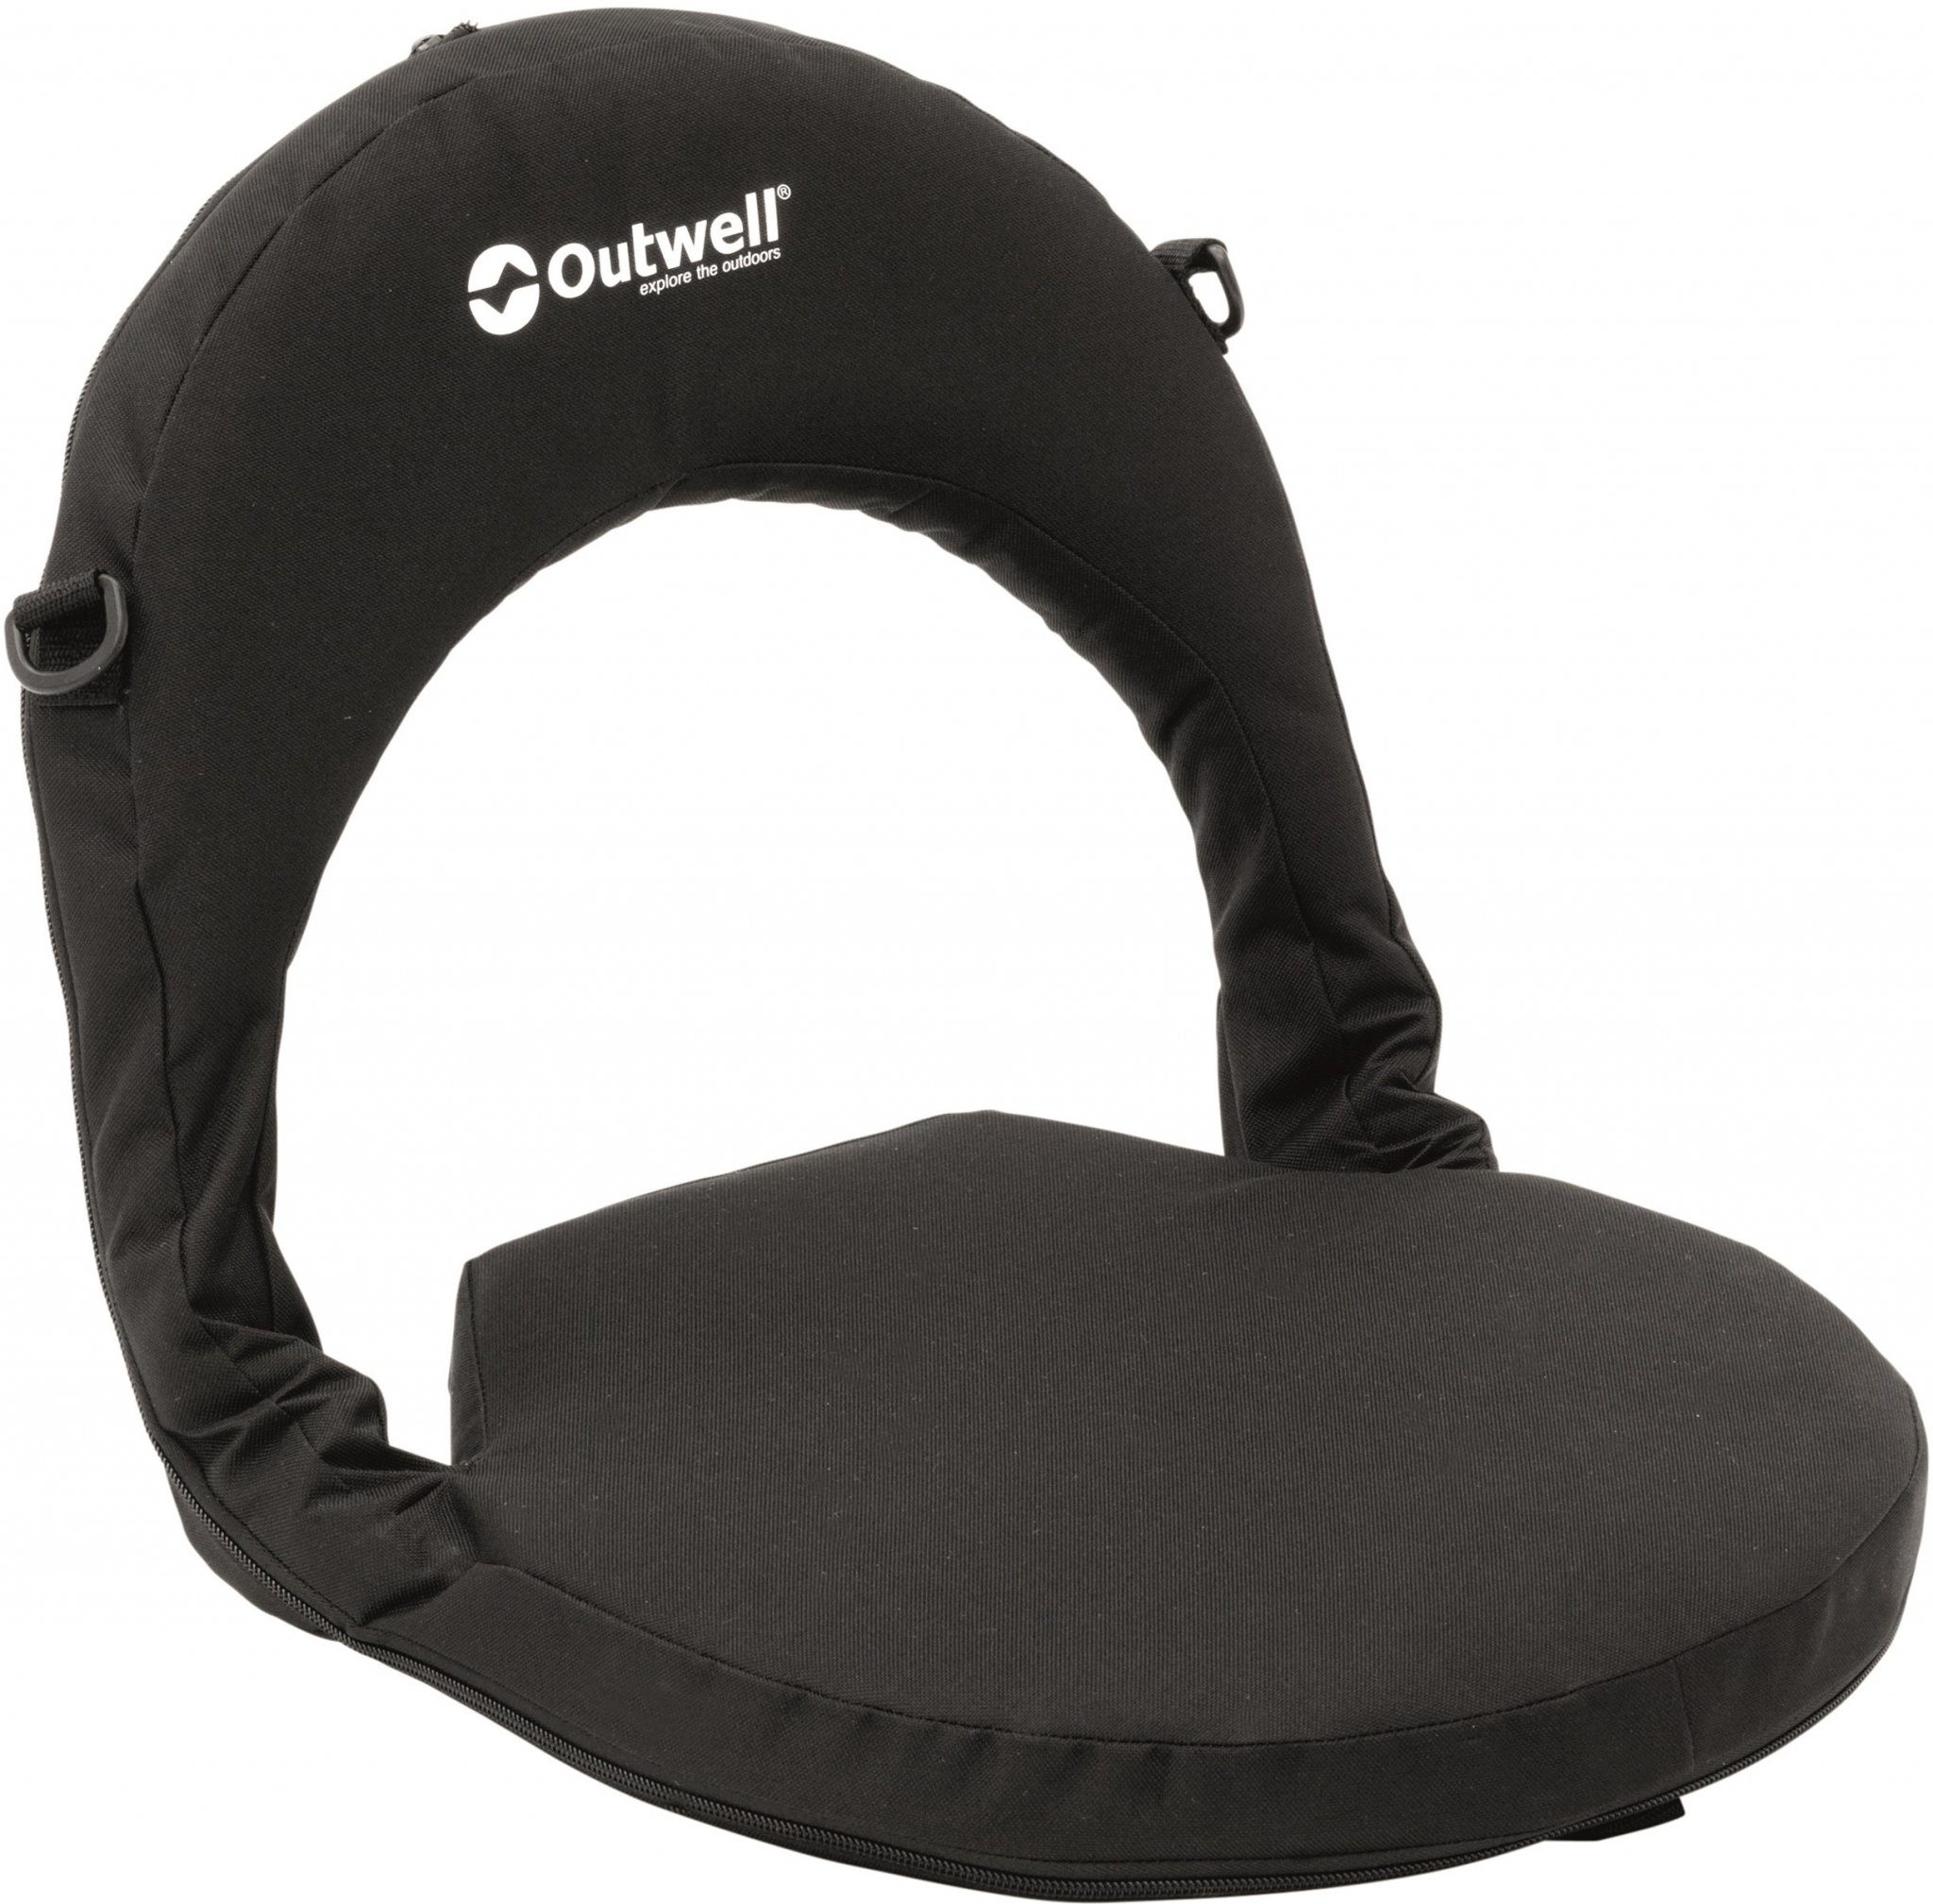 Outwell Camping-Stuhl »Poelo Deluxe Beach Chair«